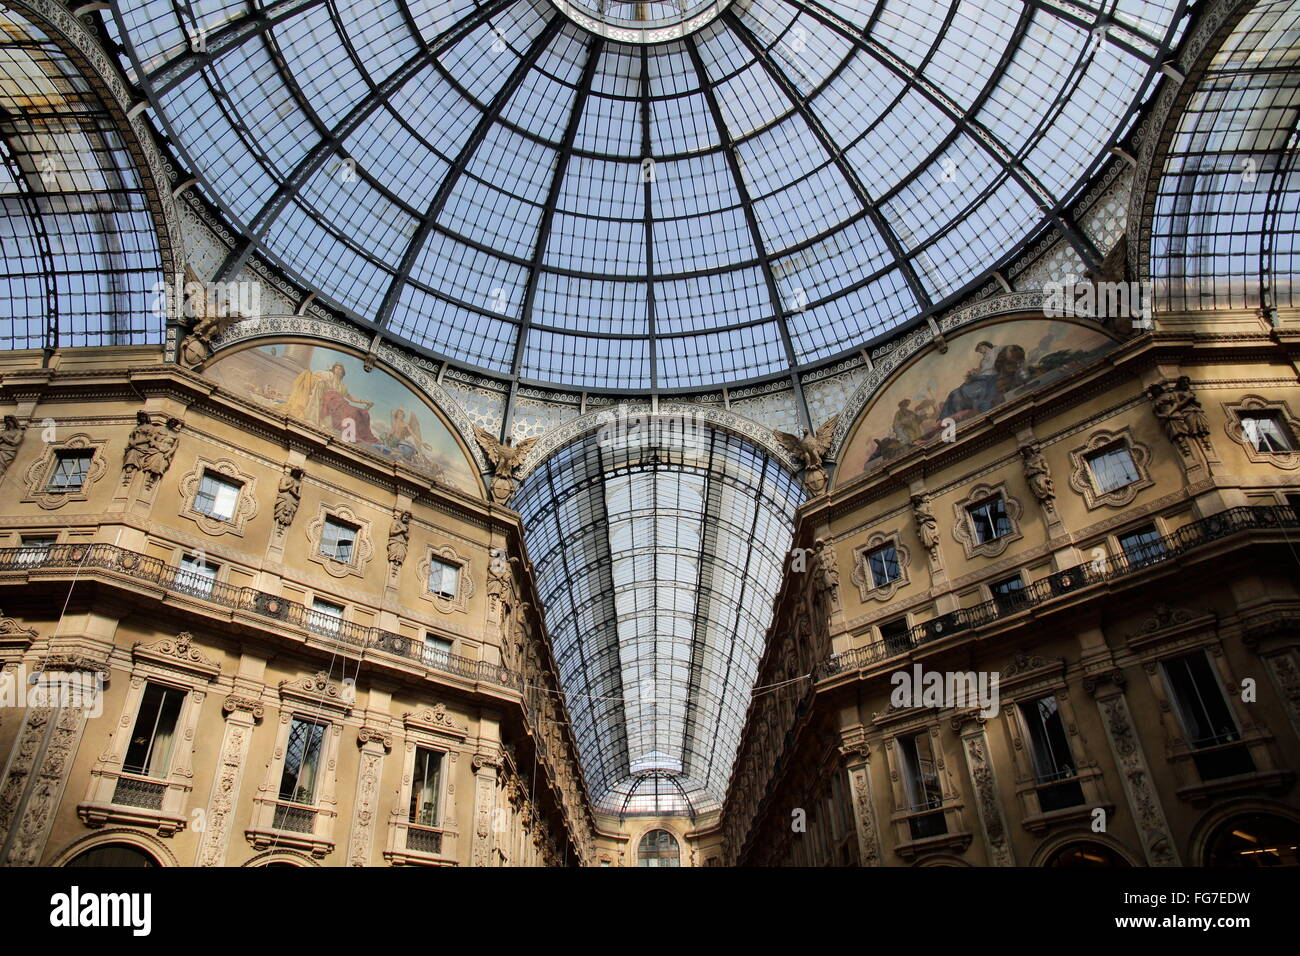 geography / travel, Italy, Lombardy, Milan, Galleria Vittorio Emanuele II, Additional-Rights-Clearance-Info-Not - Stock Image